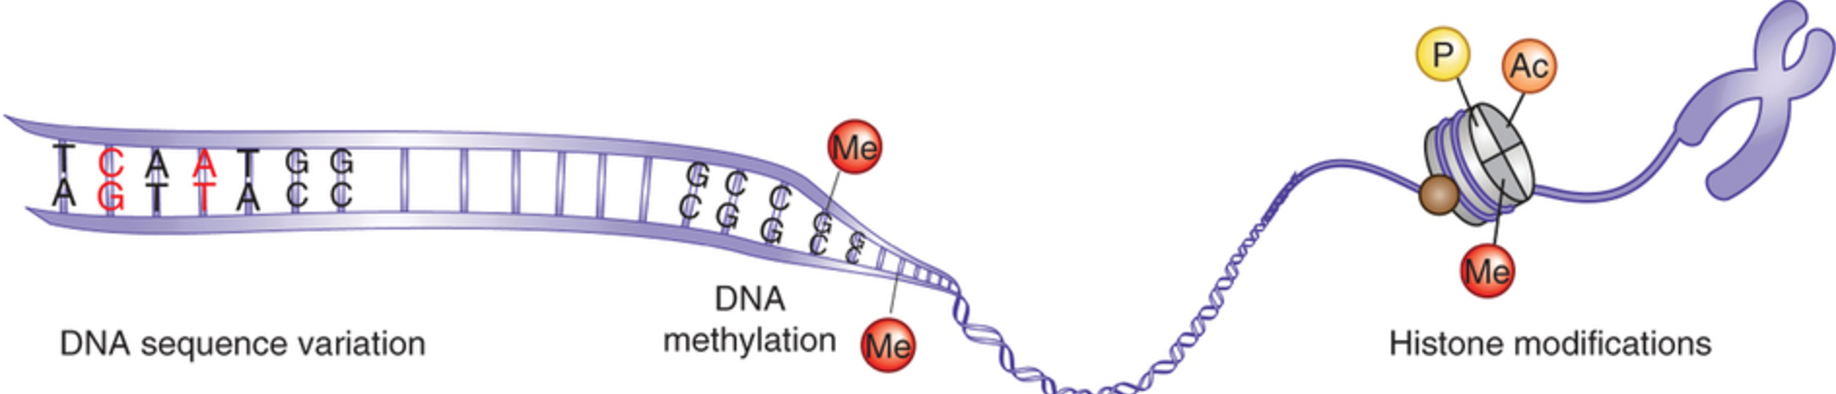 """DNA string wraps around histone """"bead"""", before condensing further. The histone """"bead"""" can have multiple chemicals tagged onto it (P, Ac or Me), which in turn changes the expression of DNA wrapped around it. From Nature Neuroscience 17, 192–200 (2014) doi:10.1038/nn.3628."""